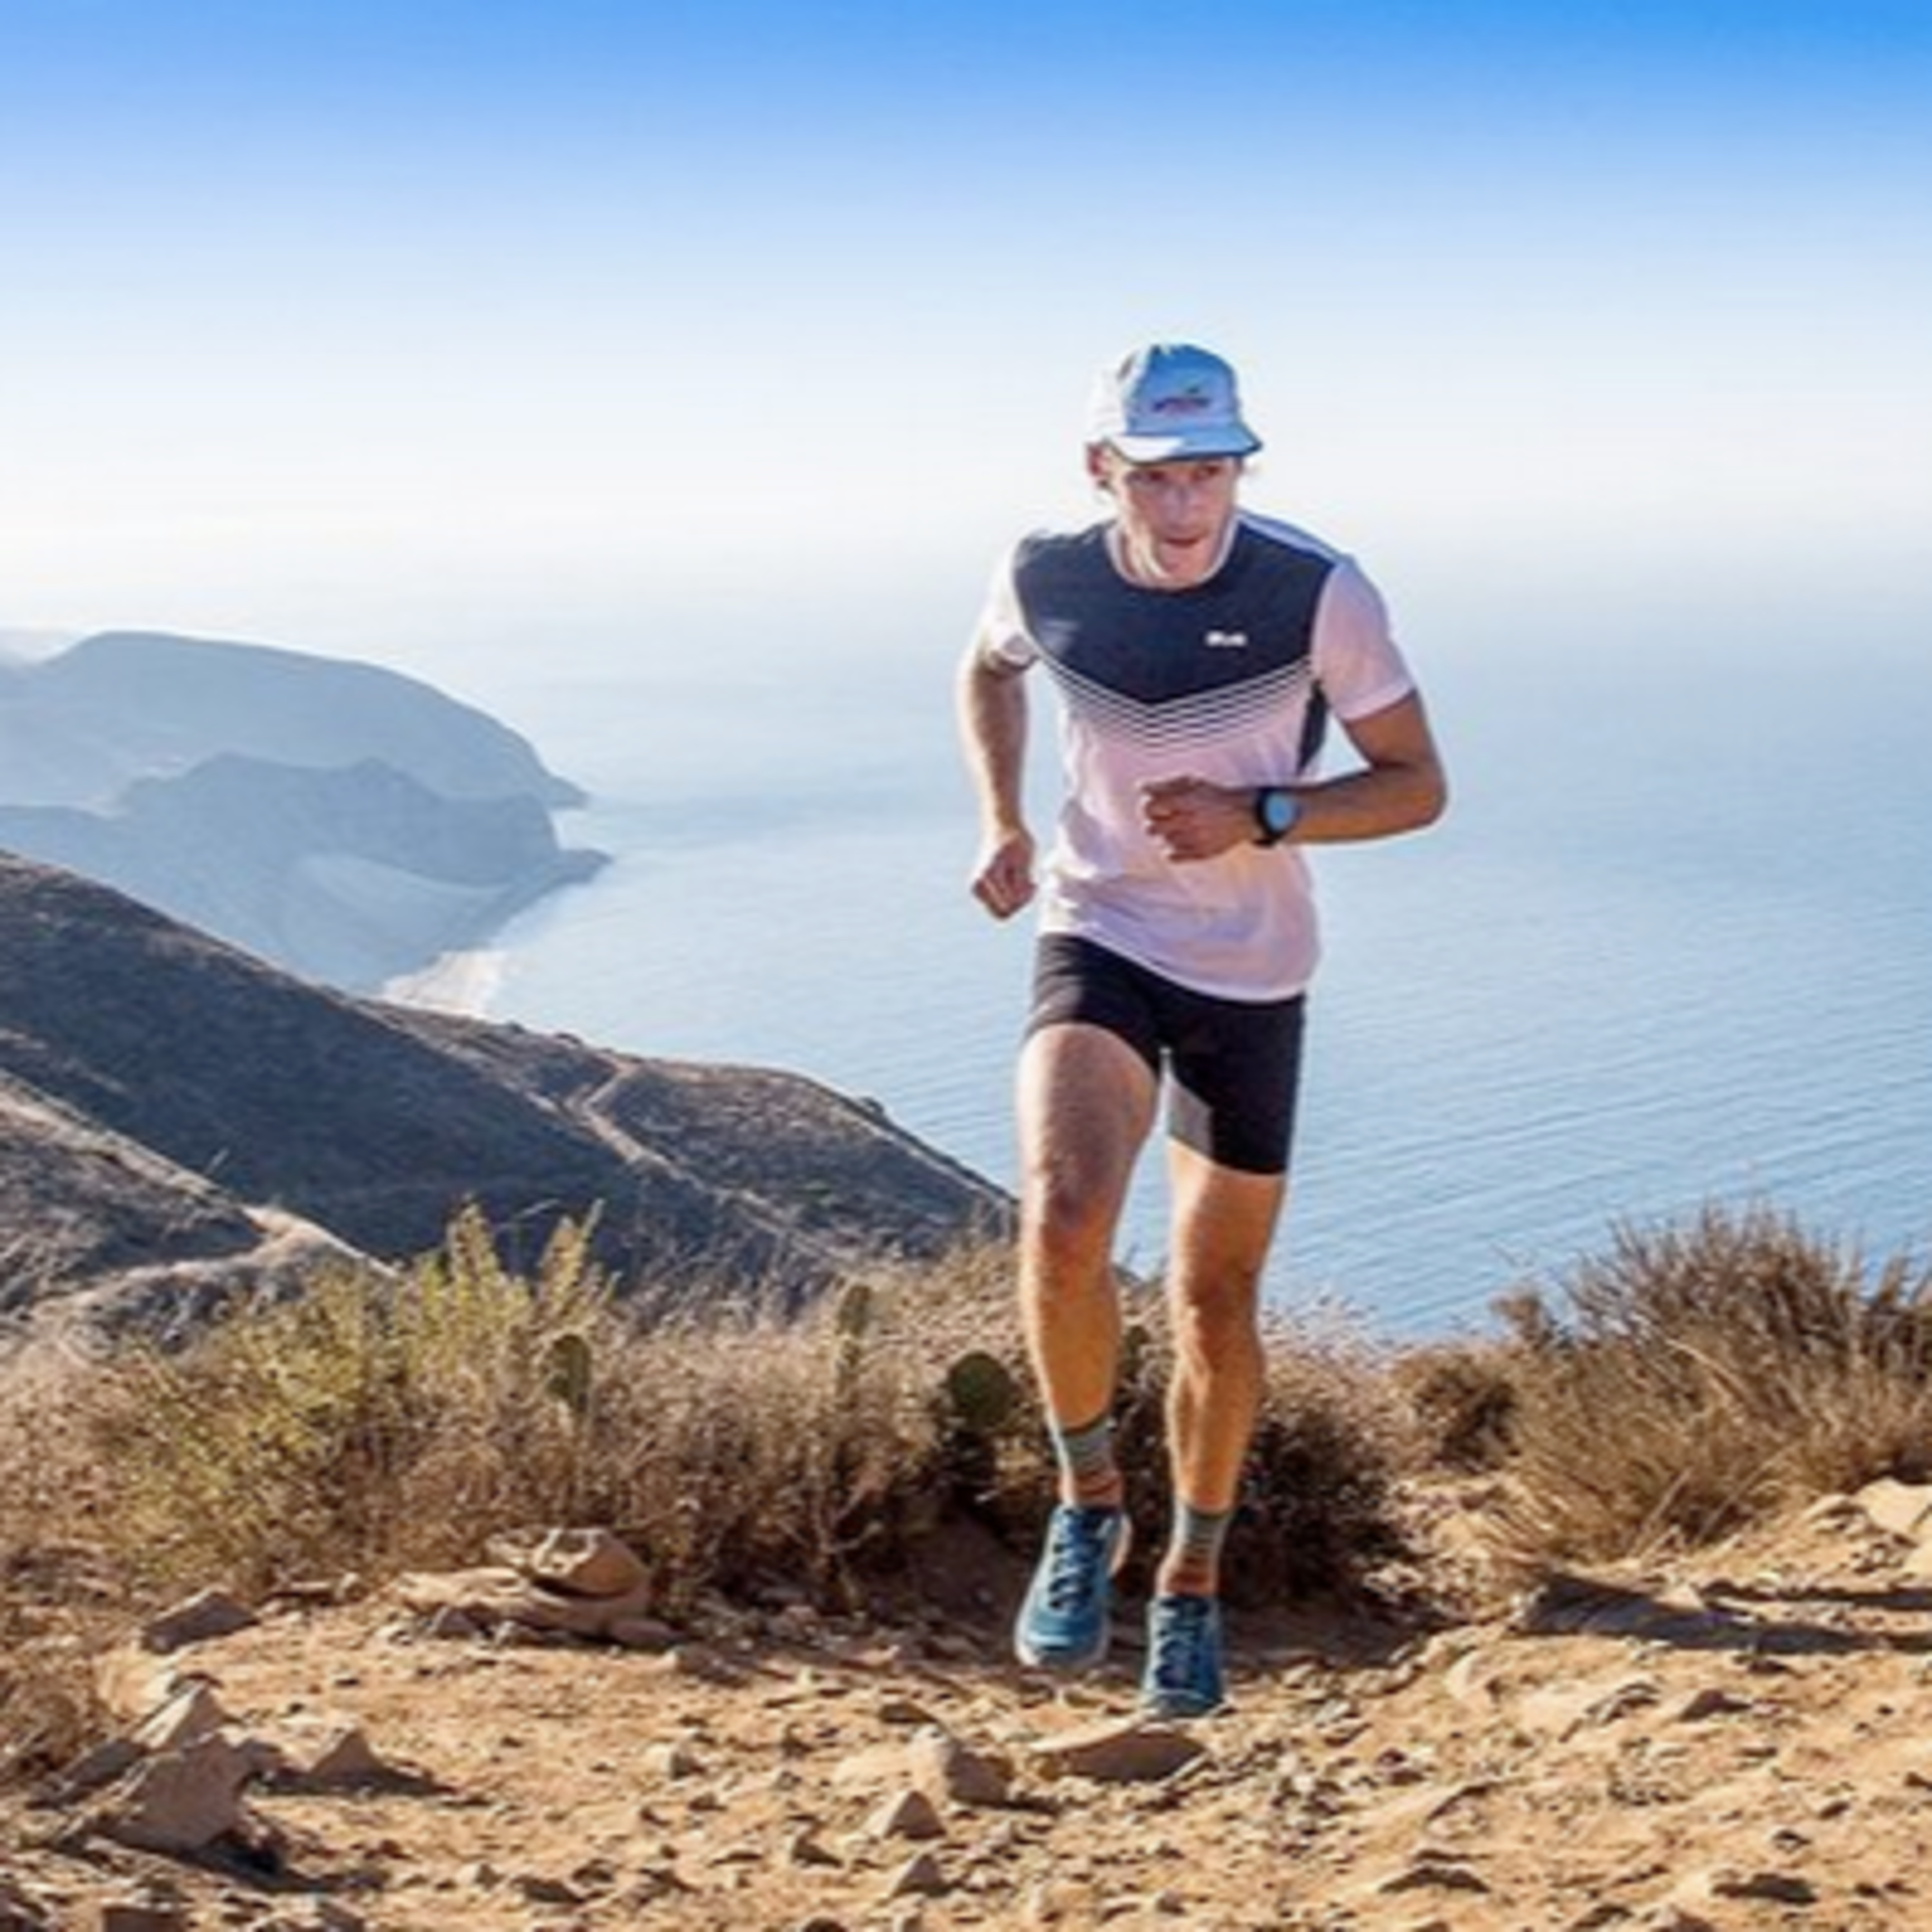 126. Jeff Stern: Growth and living life via ultra running